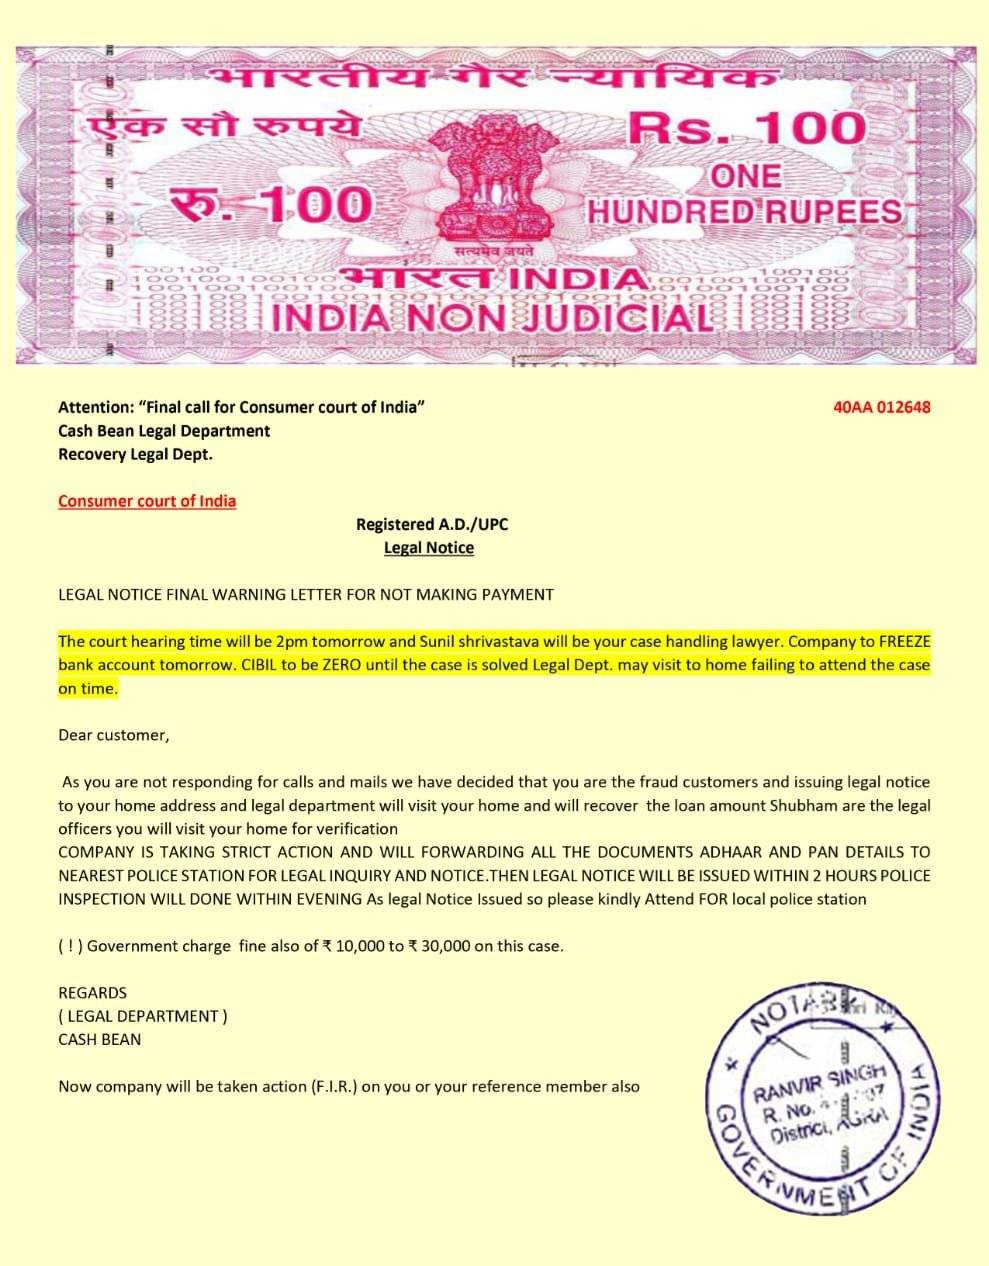 Microloan Nbfcs Forge Legal Notices Guilt Trip Clientele For Collections In Defiance Of Moratorium Bfsi News Et Bfsi